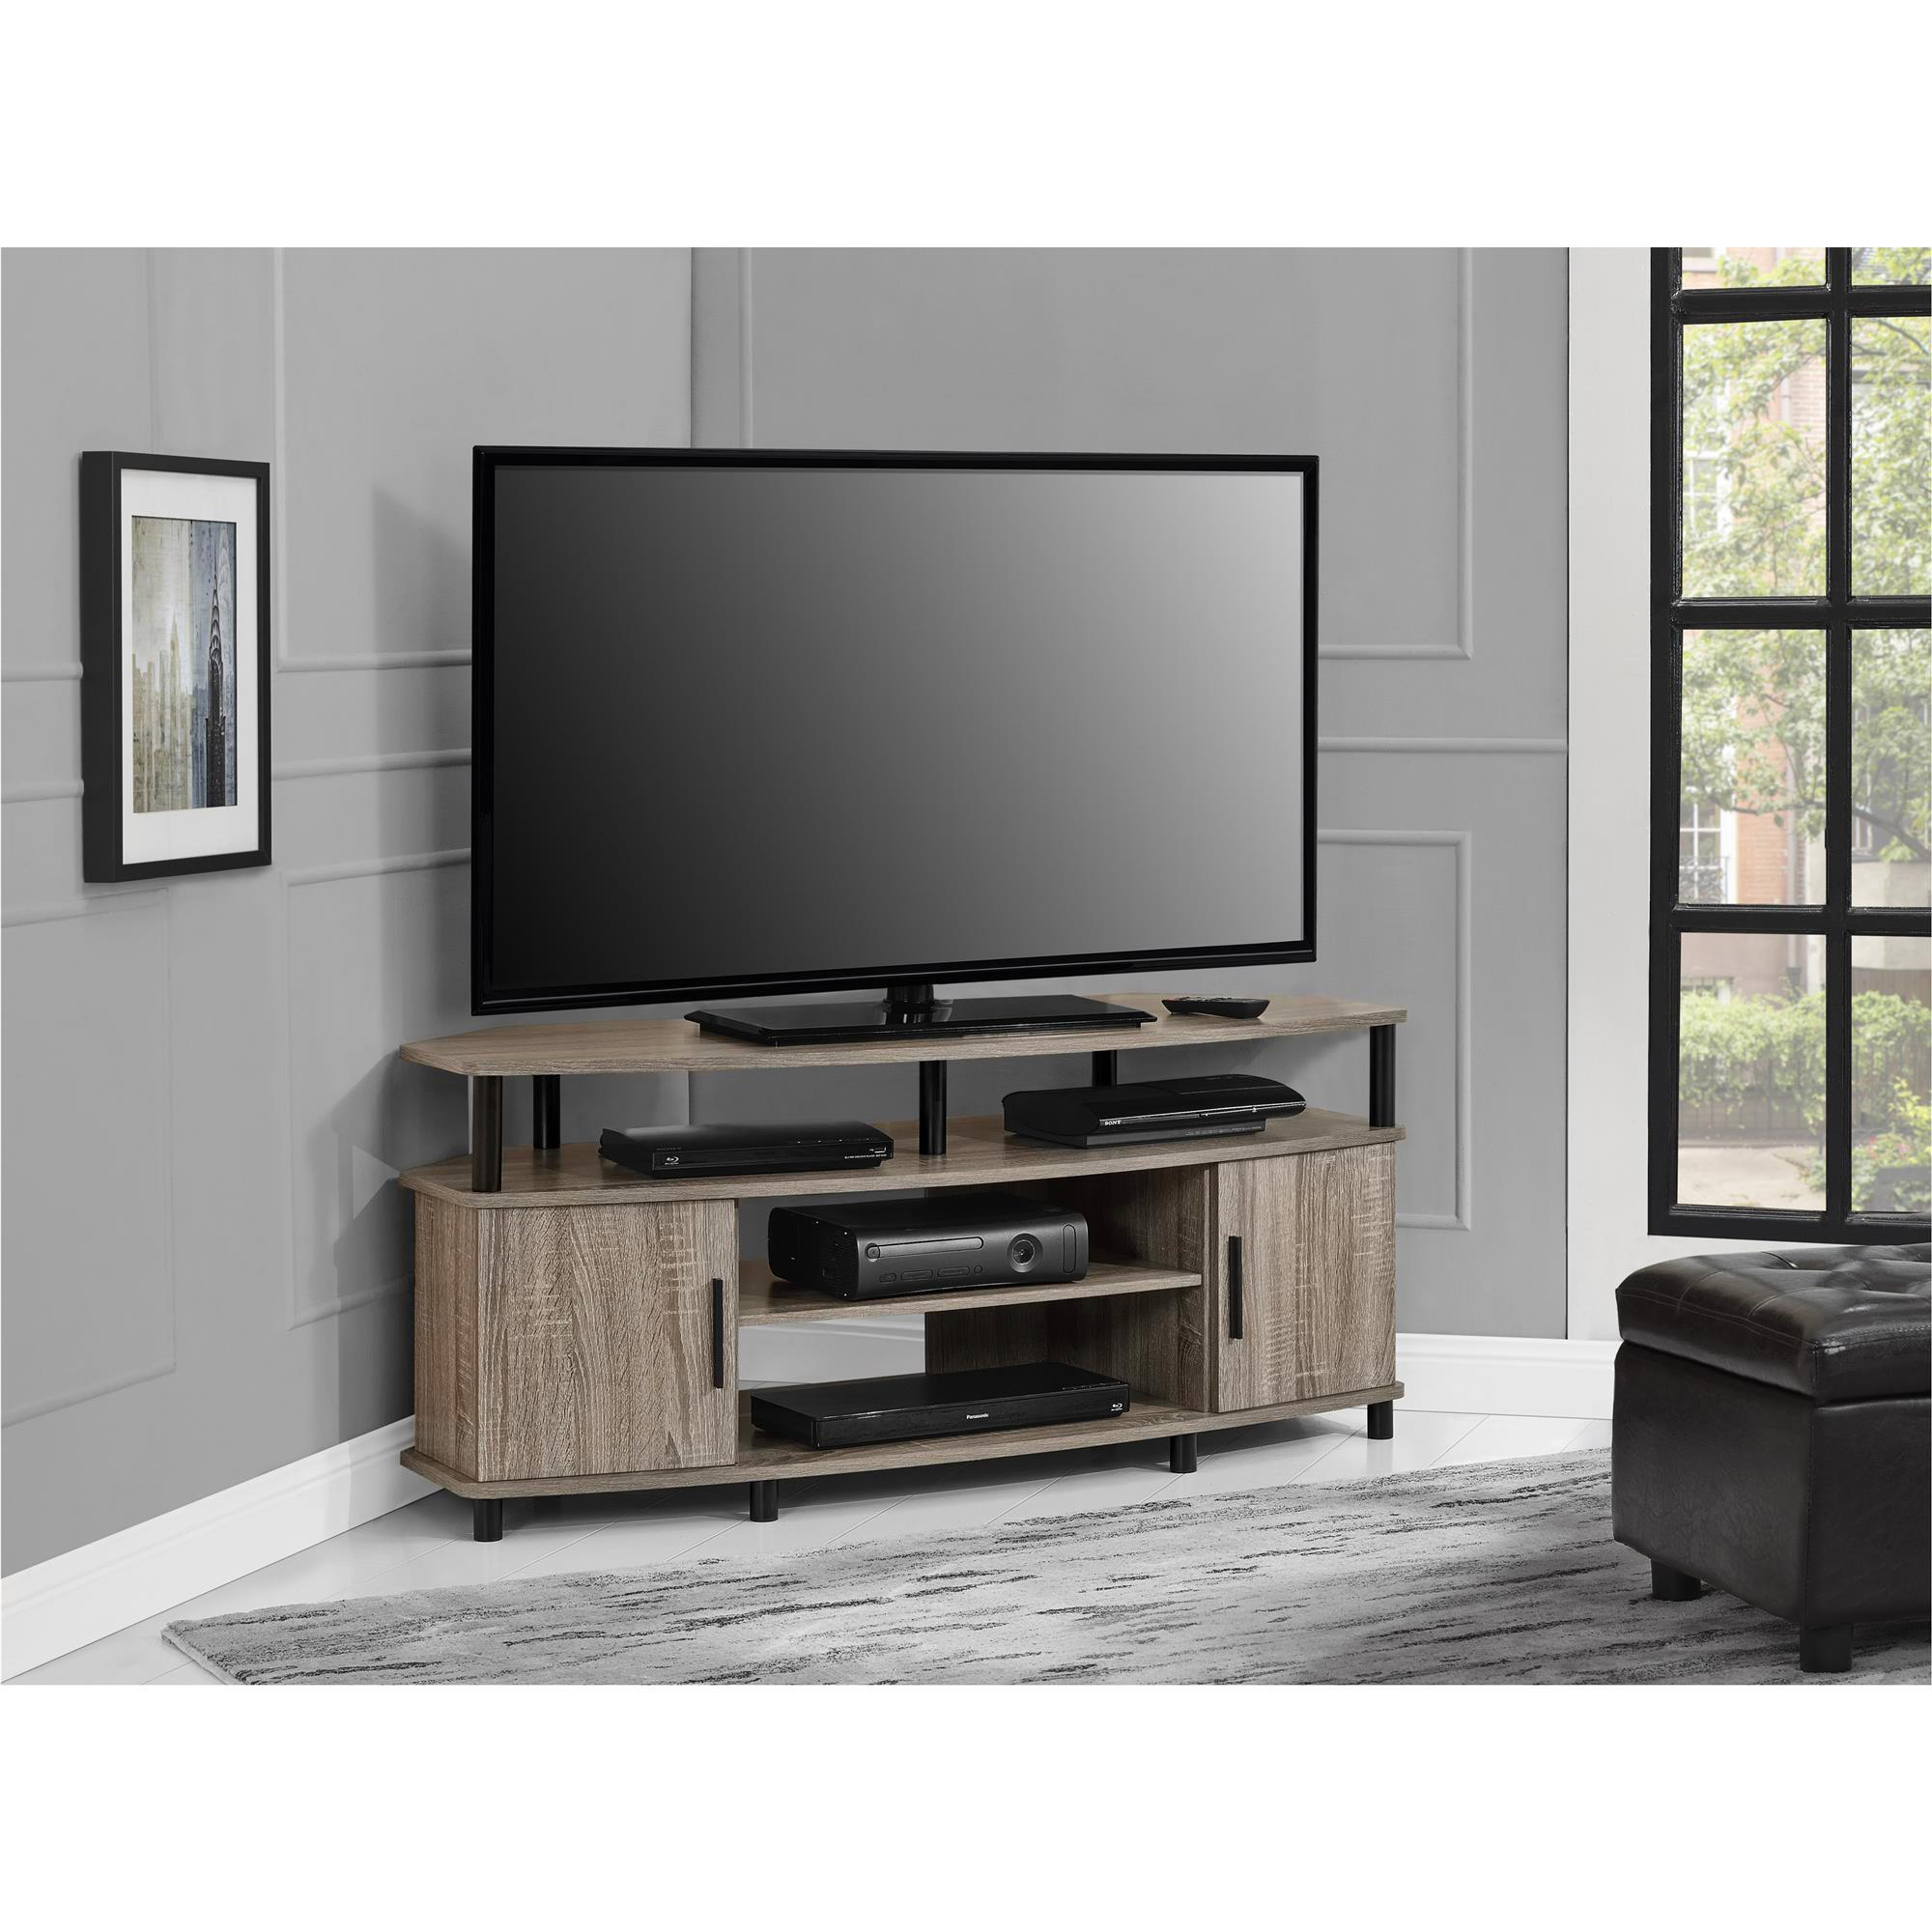 shop ameriwood home carson 50 inch sonoma oak corner tv stand free shipping today overstockcom 12653718 - Corner Tv Stands 50 Inch